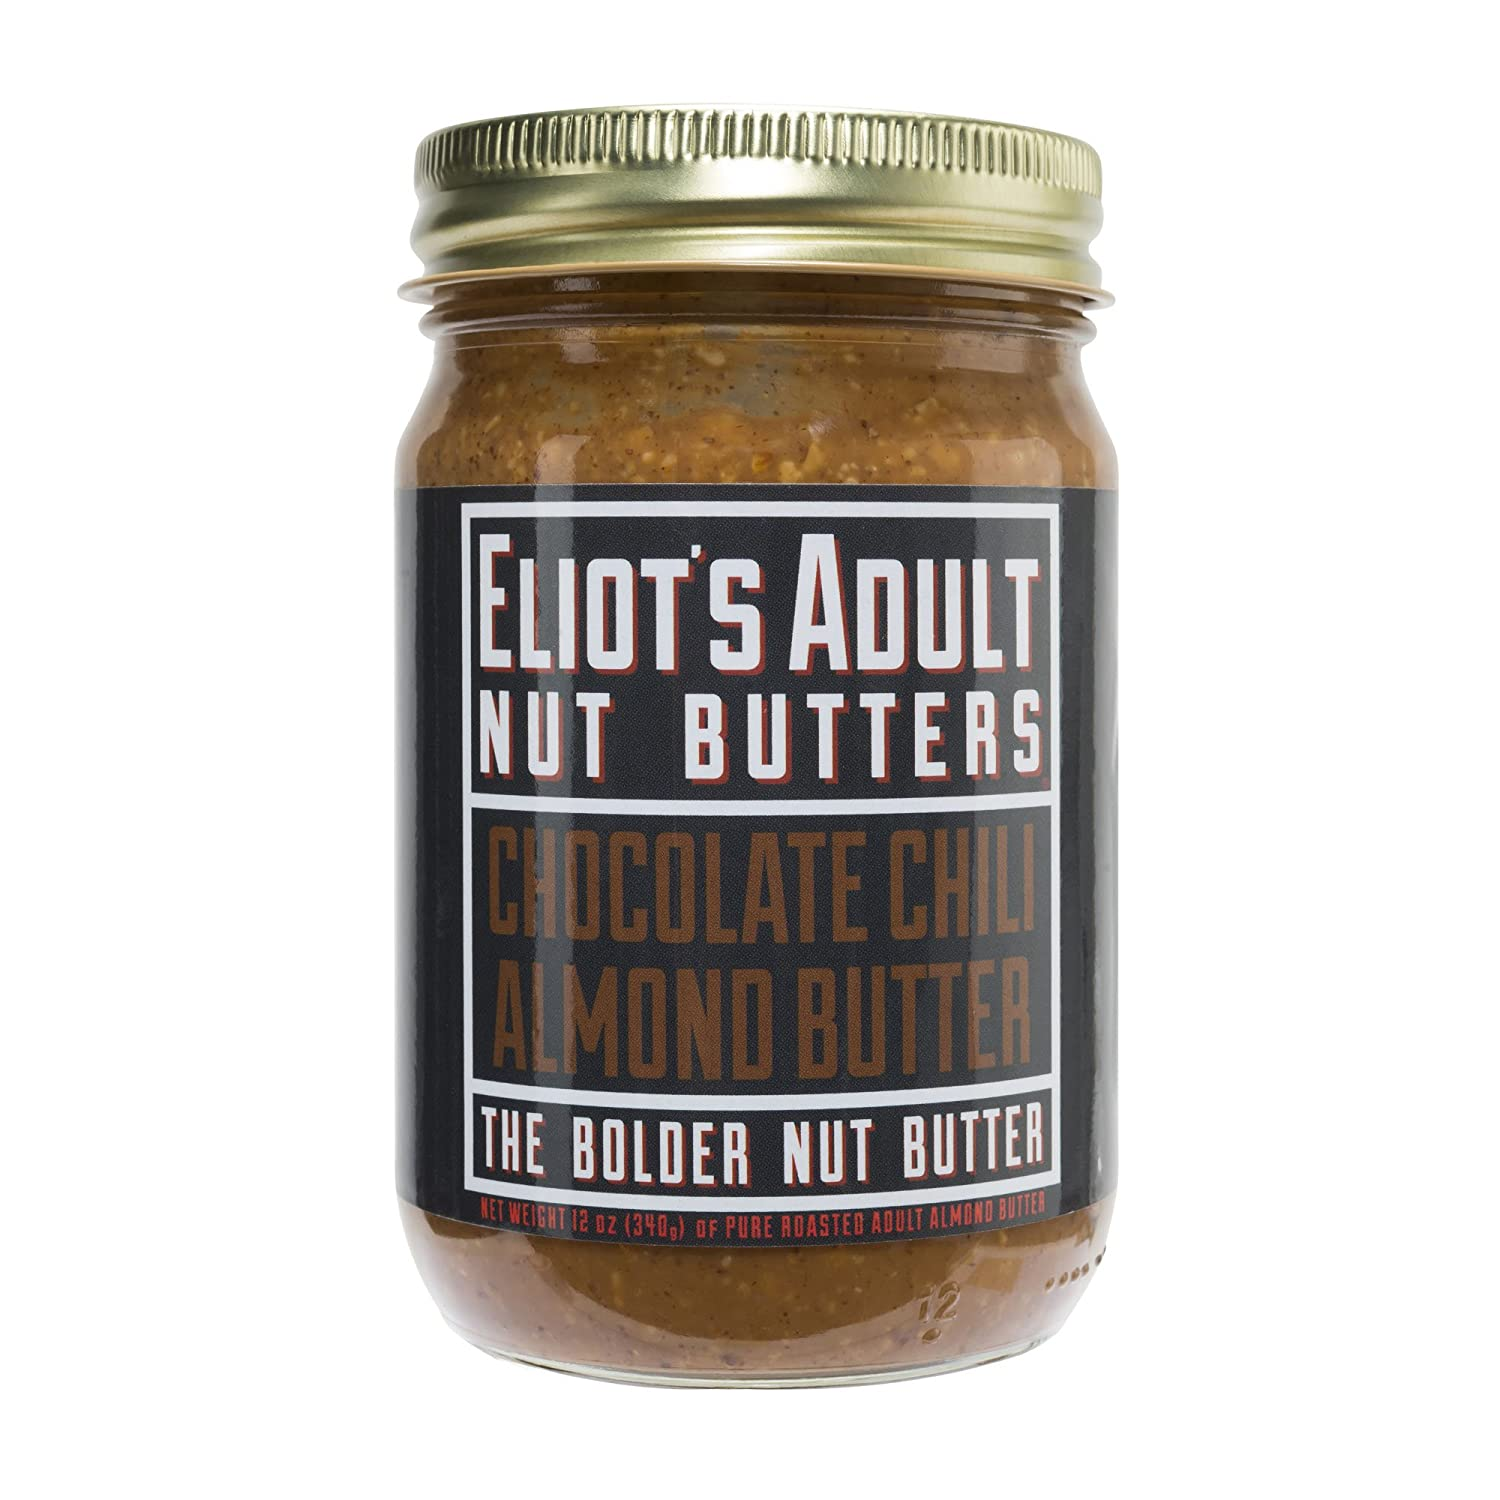 Amazon.com : Eliots Adult Nut Butters Chocolate Chili Almond Butter, 12 Ounce, Non-GMO, Gluten Free, Vegan, Keto and Paleo Friendly, 72 grams of Protein ...